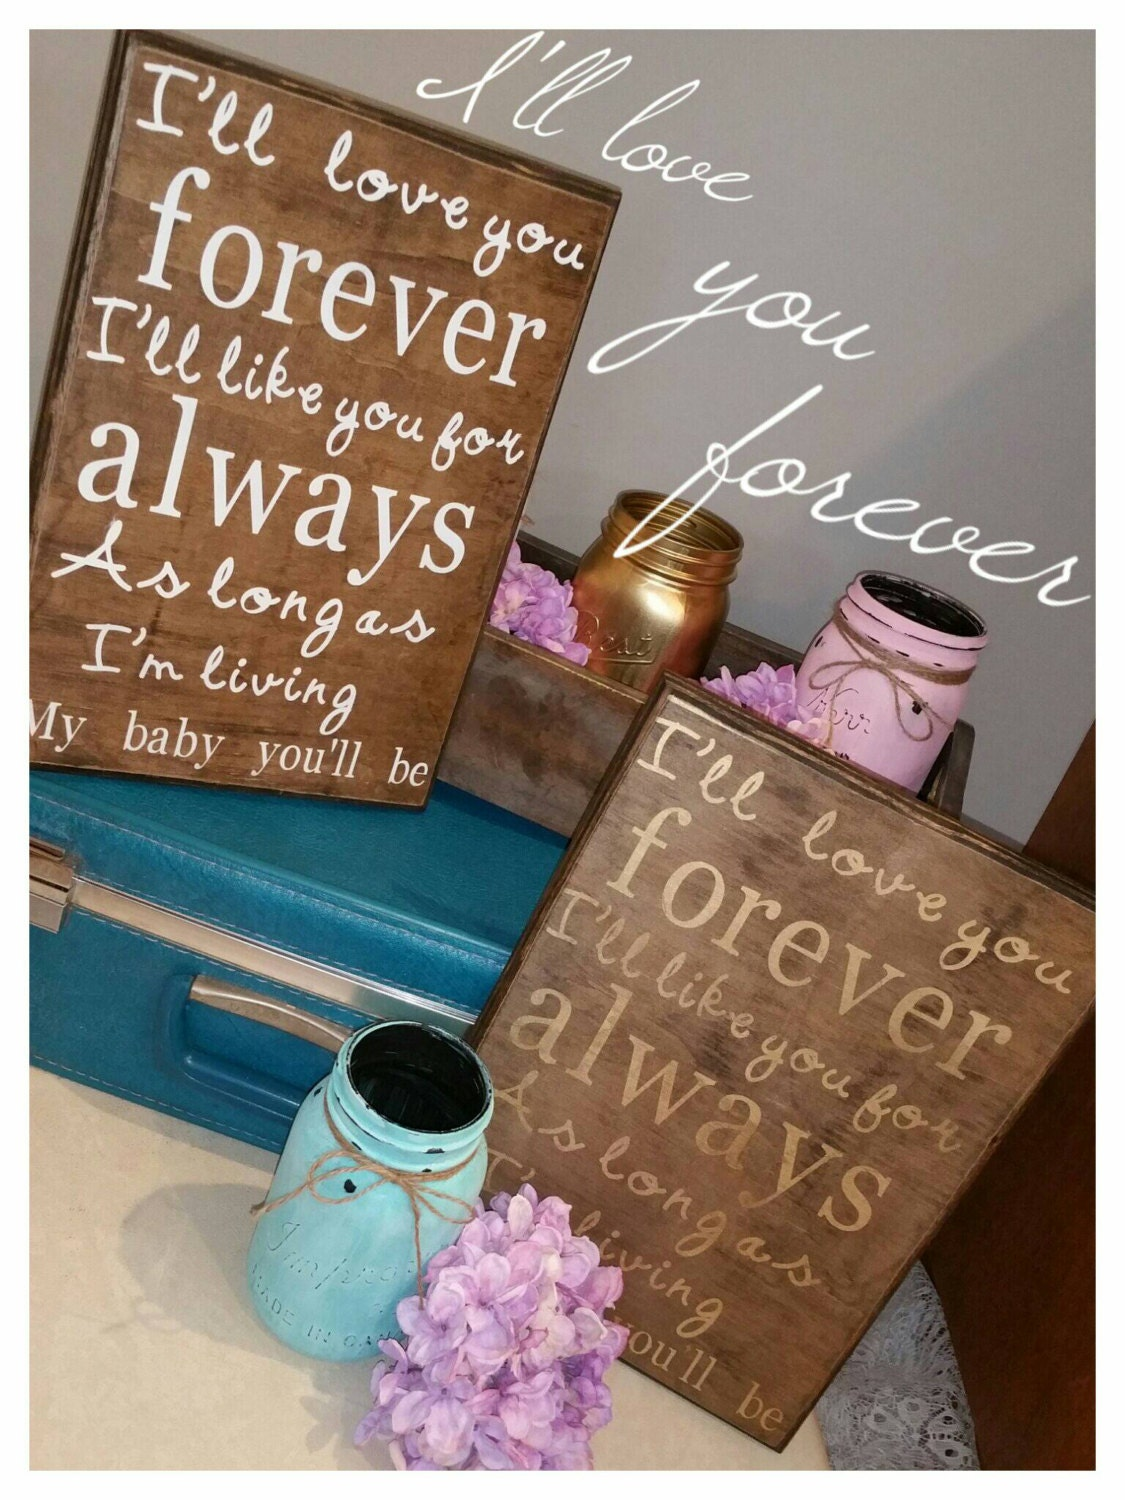 I'll love you forever story quote children book by ...